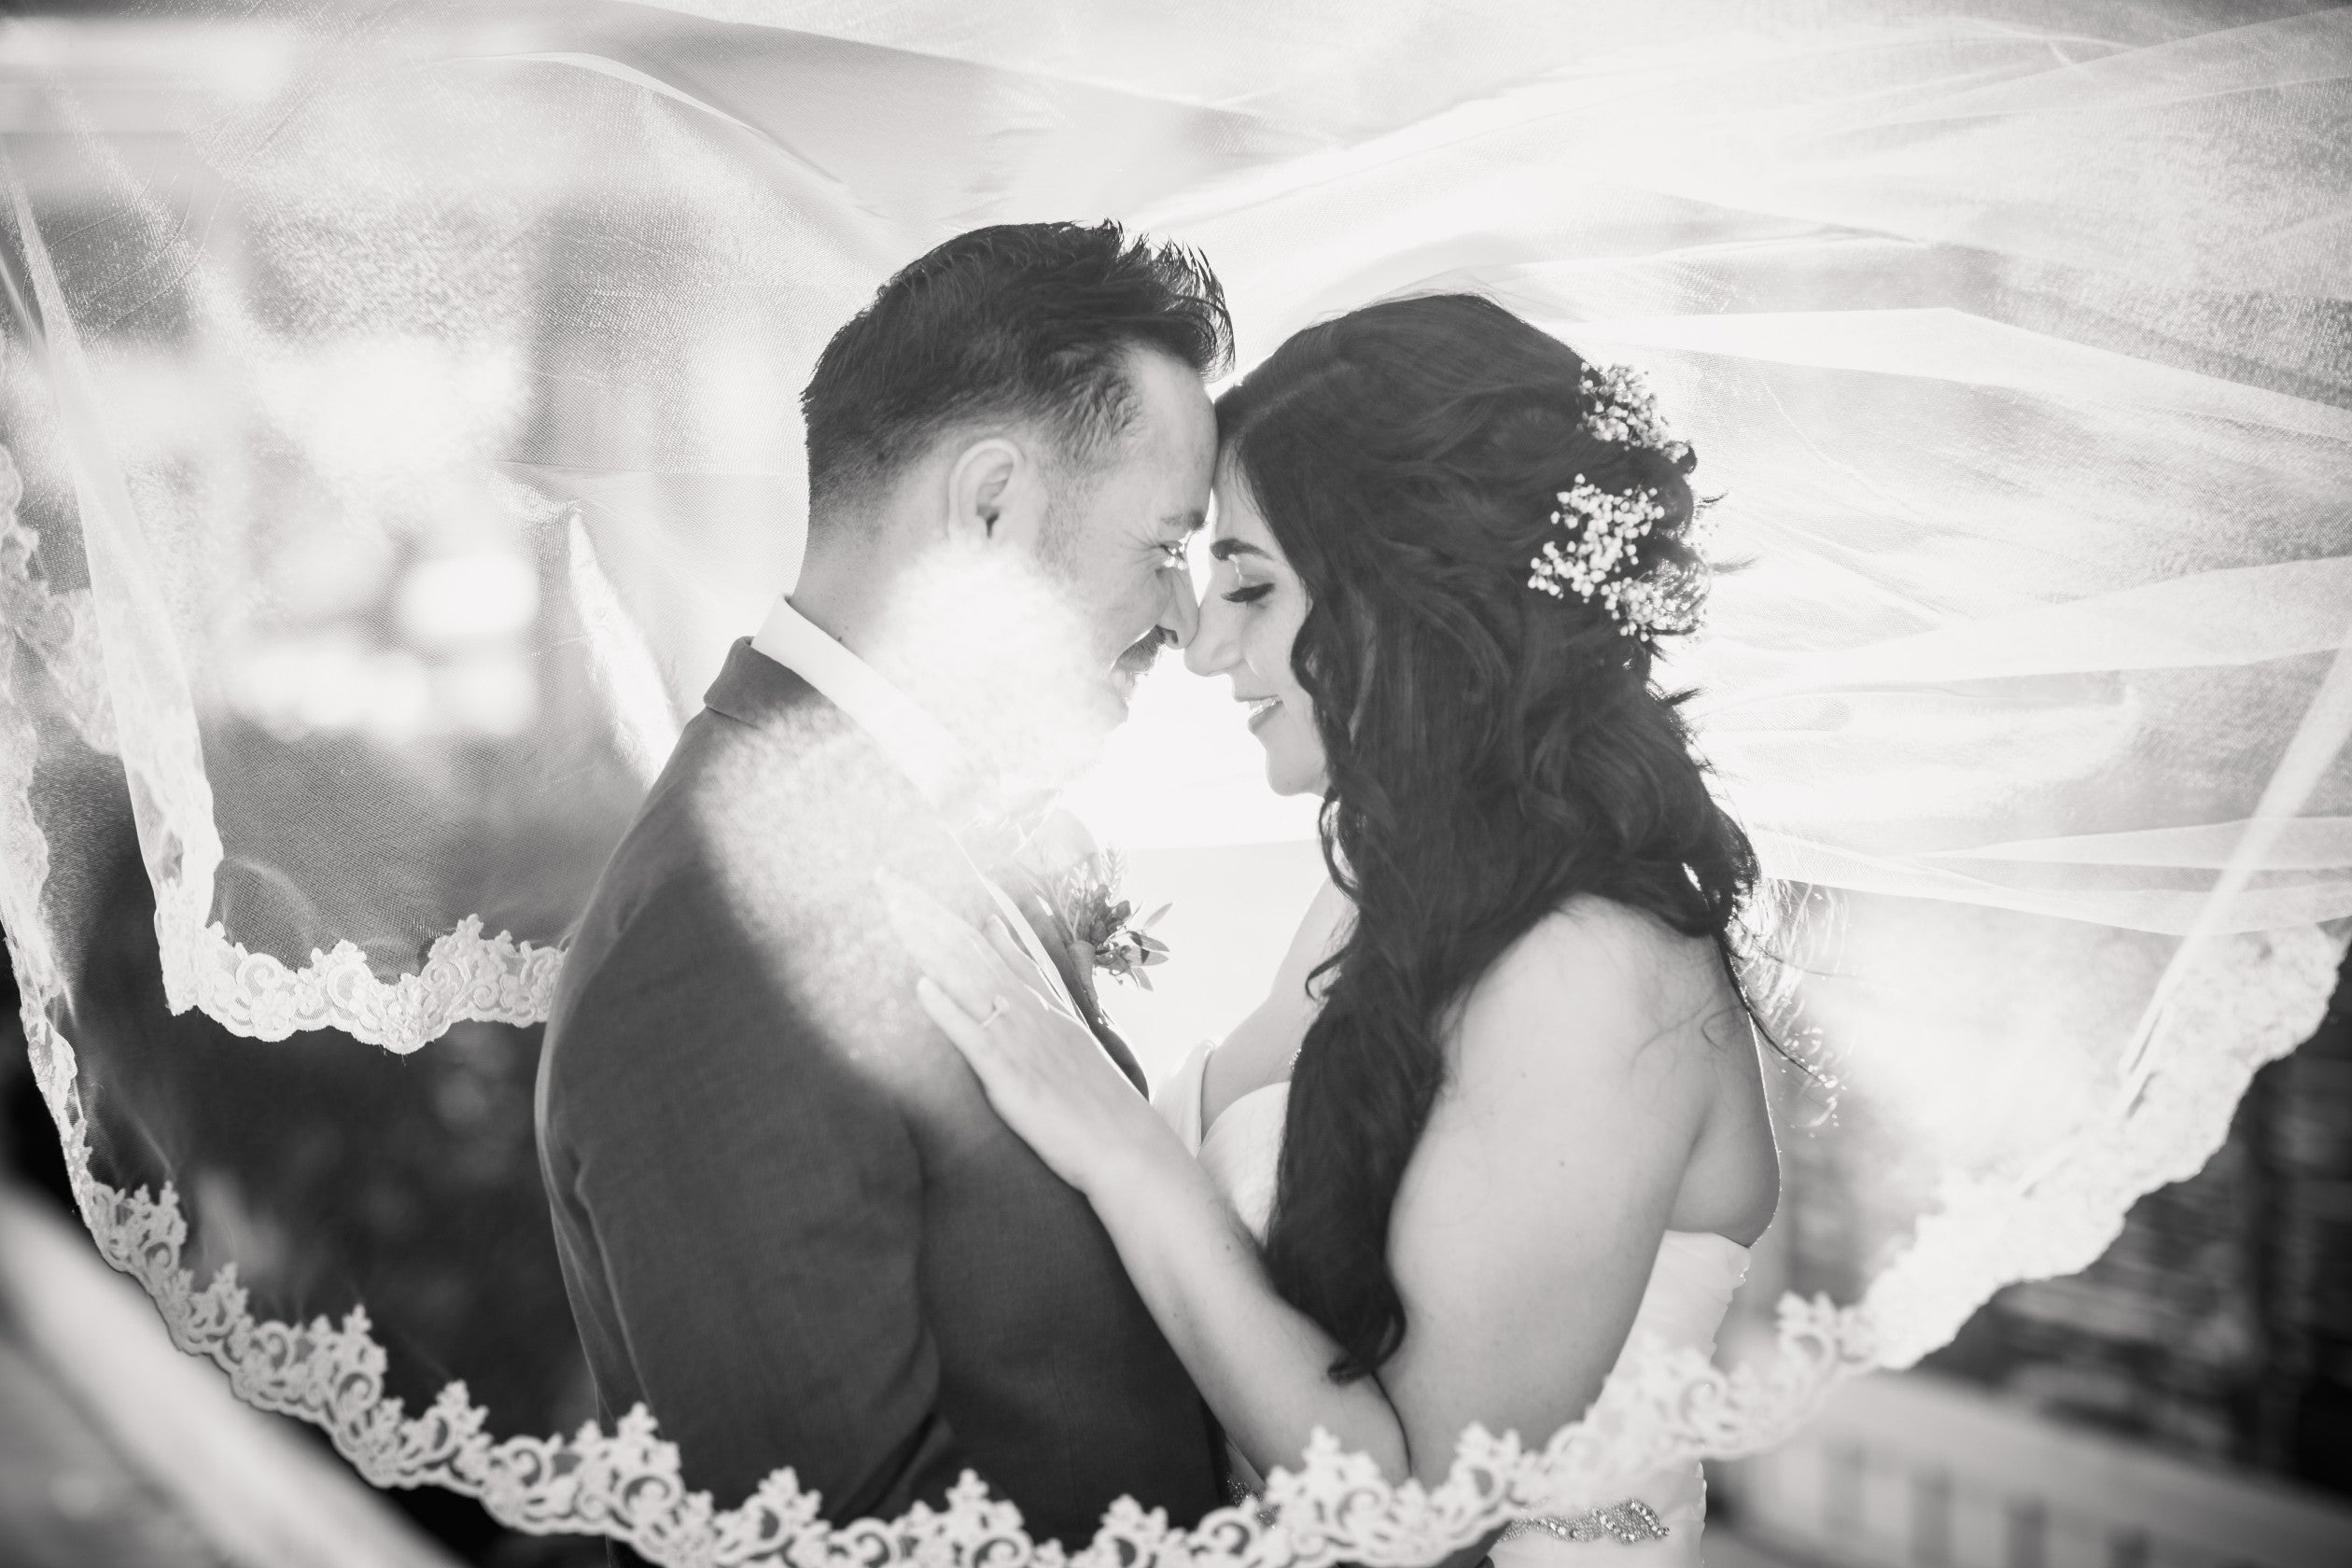 Wedding Photography of Couple with Lace Veil Over Head